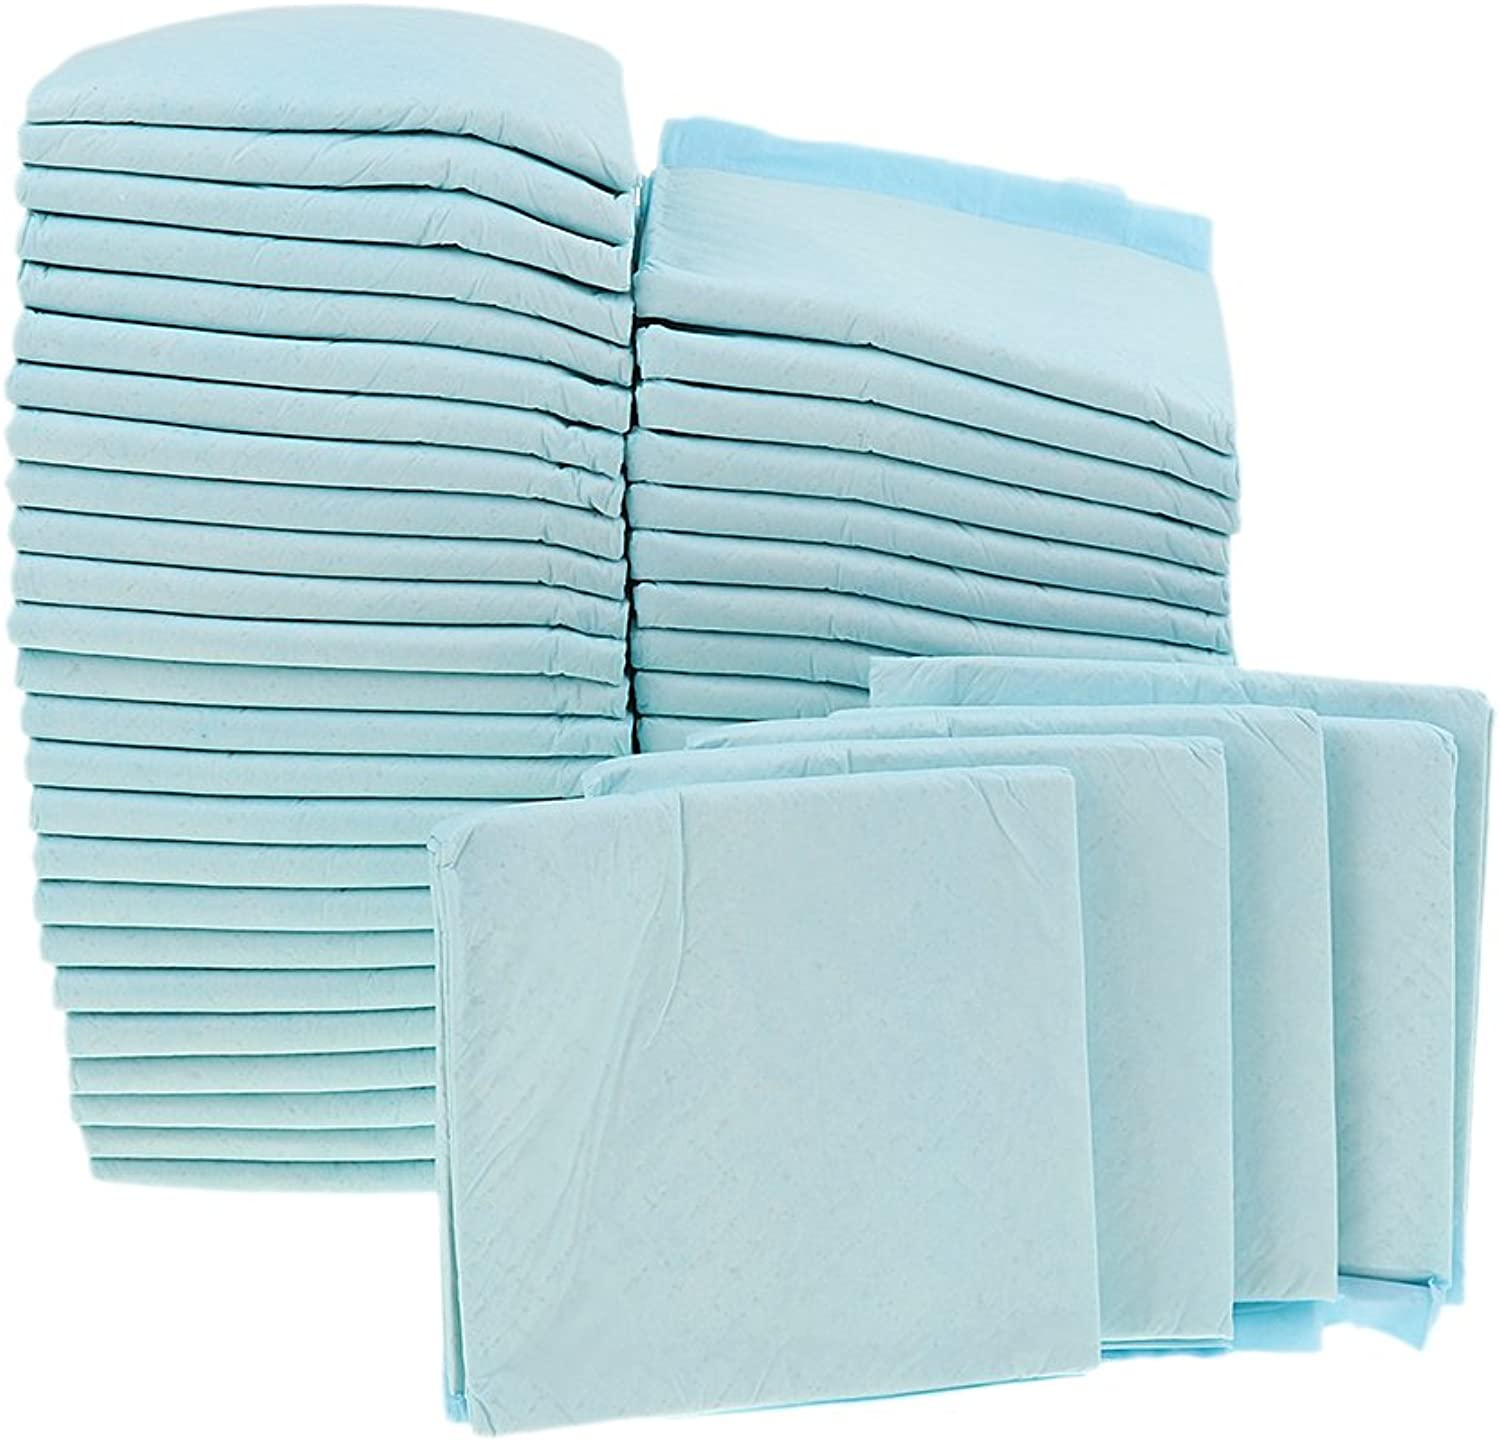 1 Pack Super Absorbent Diapers LeakFree Dog Puppy Cat Pet Nappy Pee Pads  Small